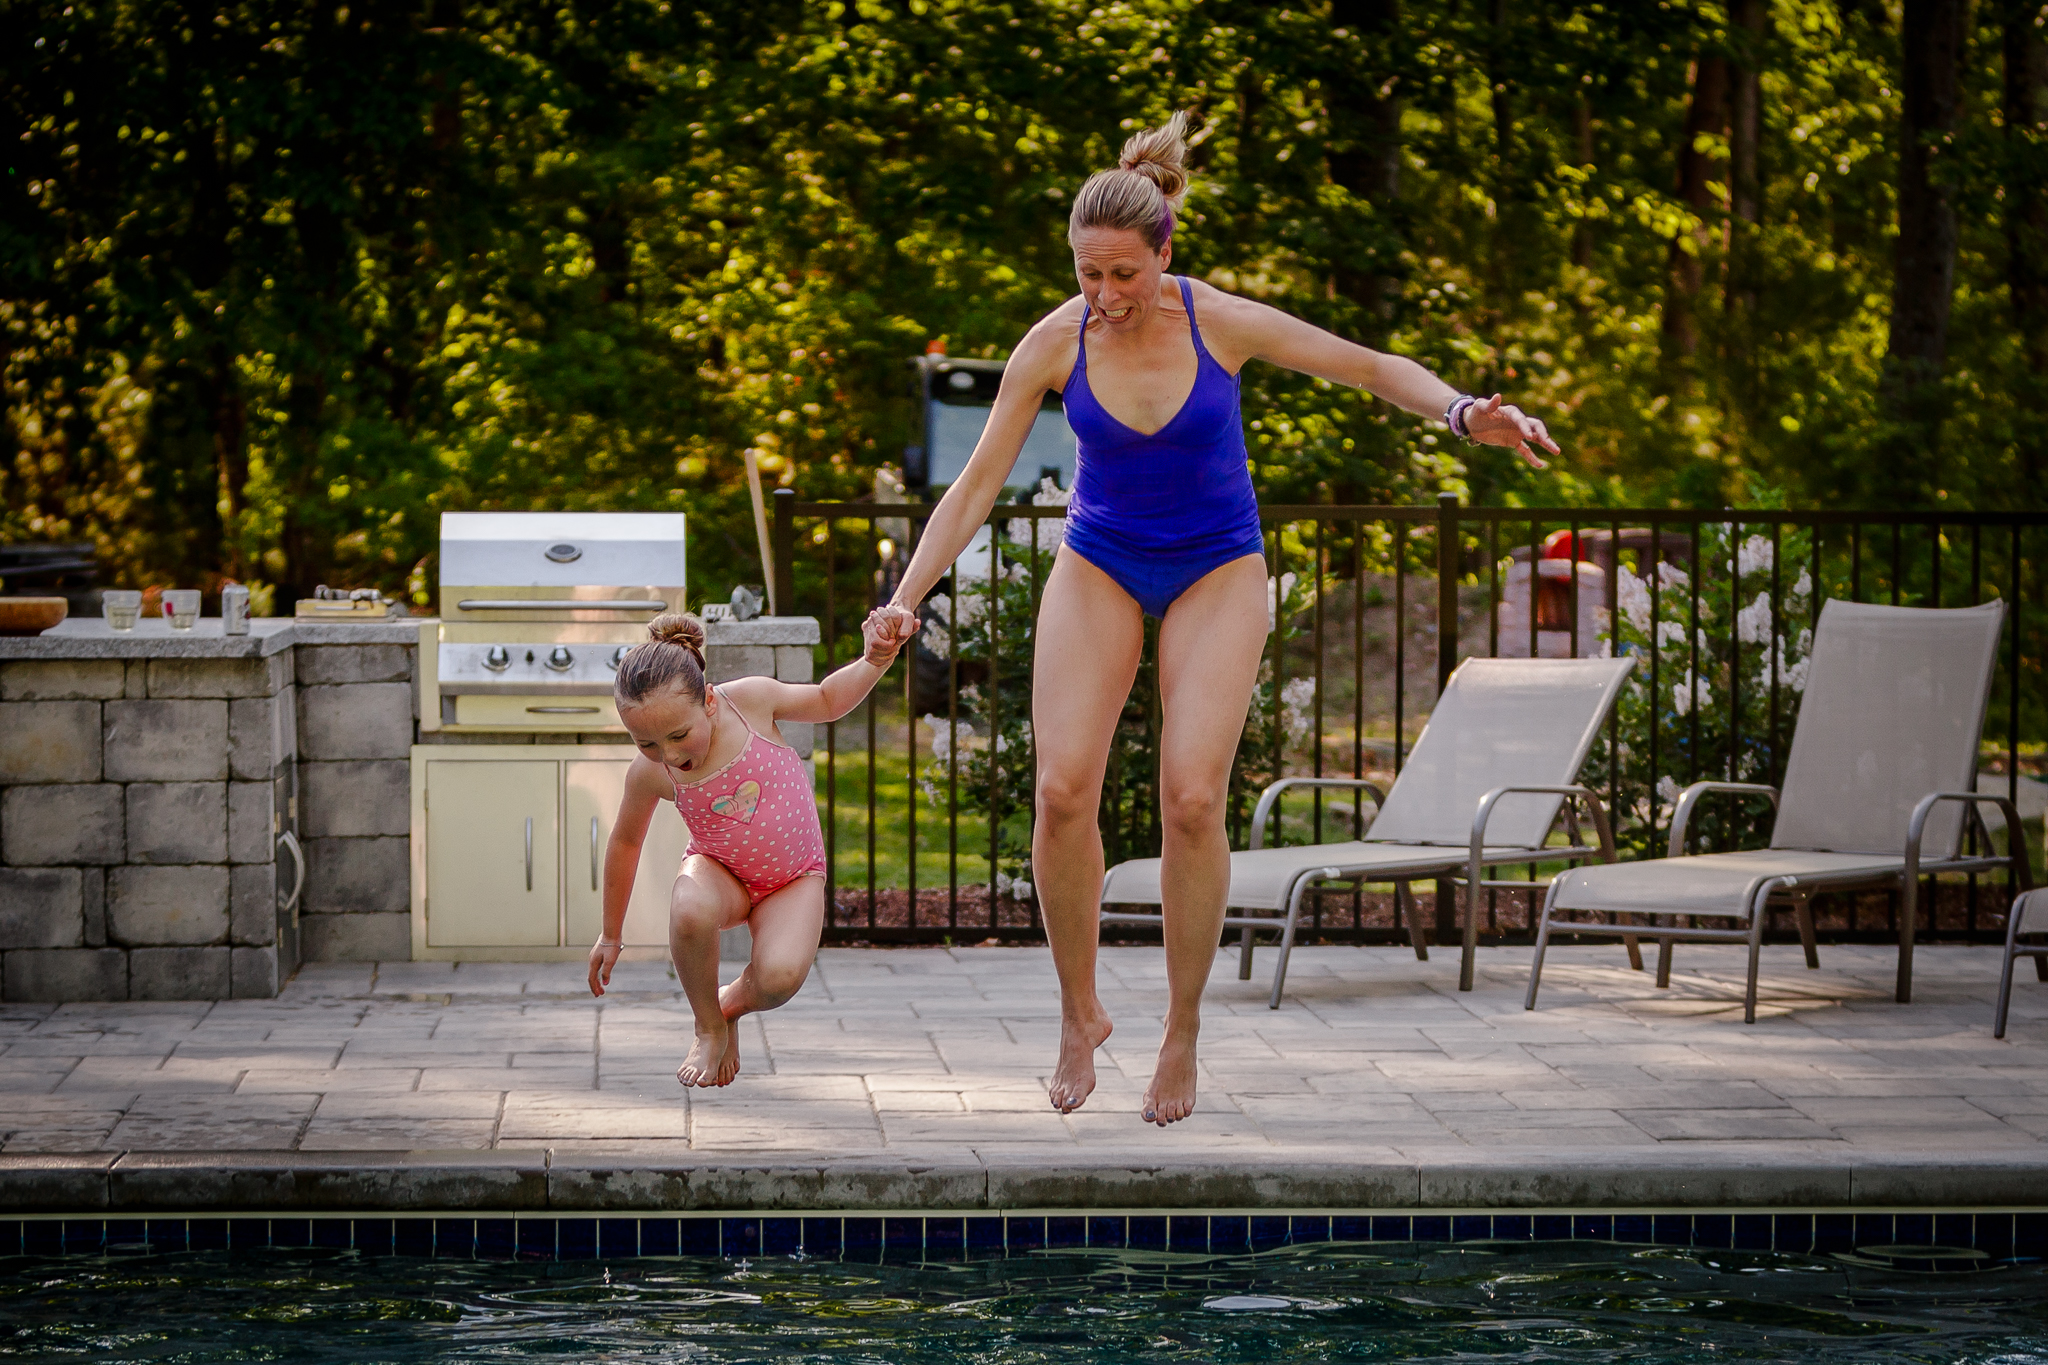 mom and daughter jumping into pool